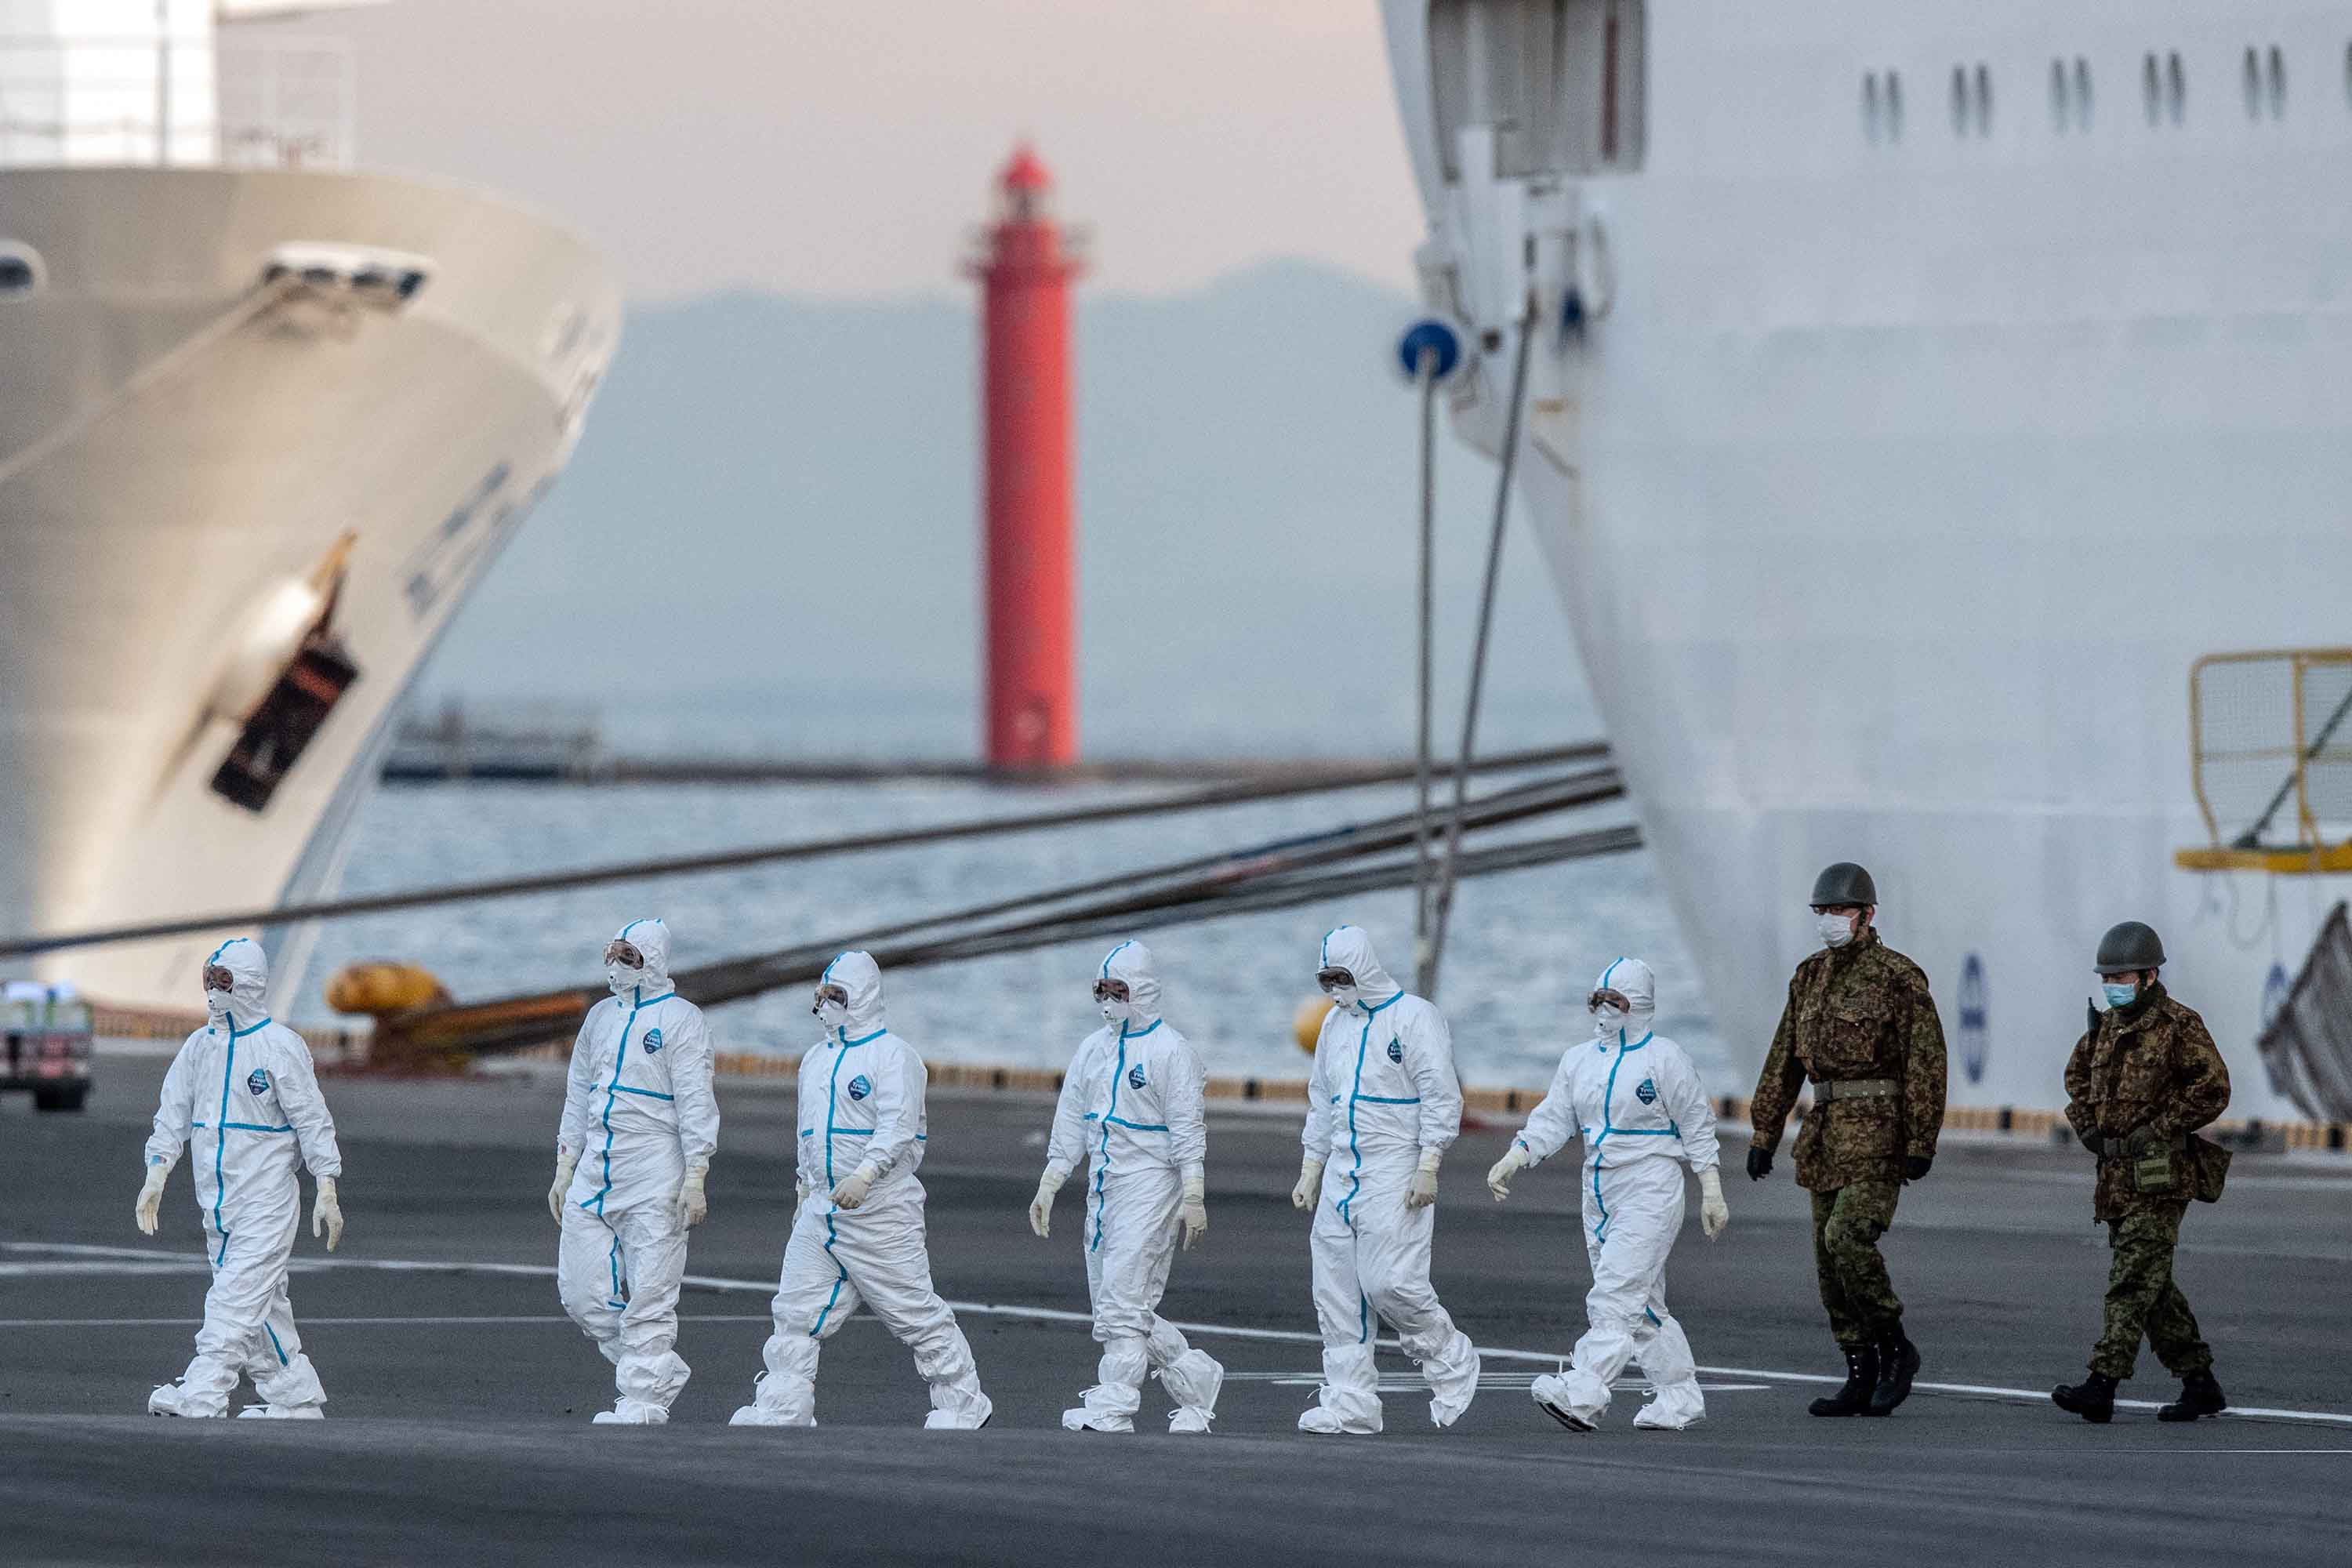 Japanese officials walk from the Diamond Princess cruise ship at Daikoku Pier in Yokohama on Monday.